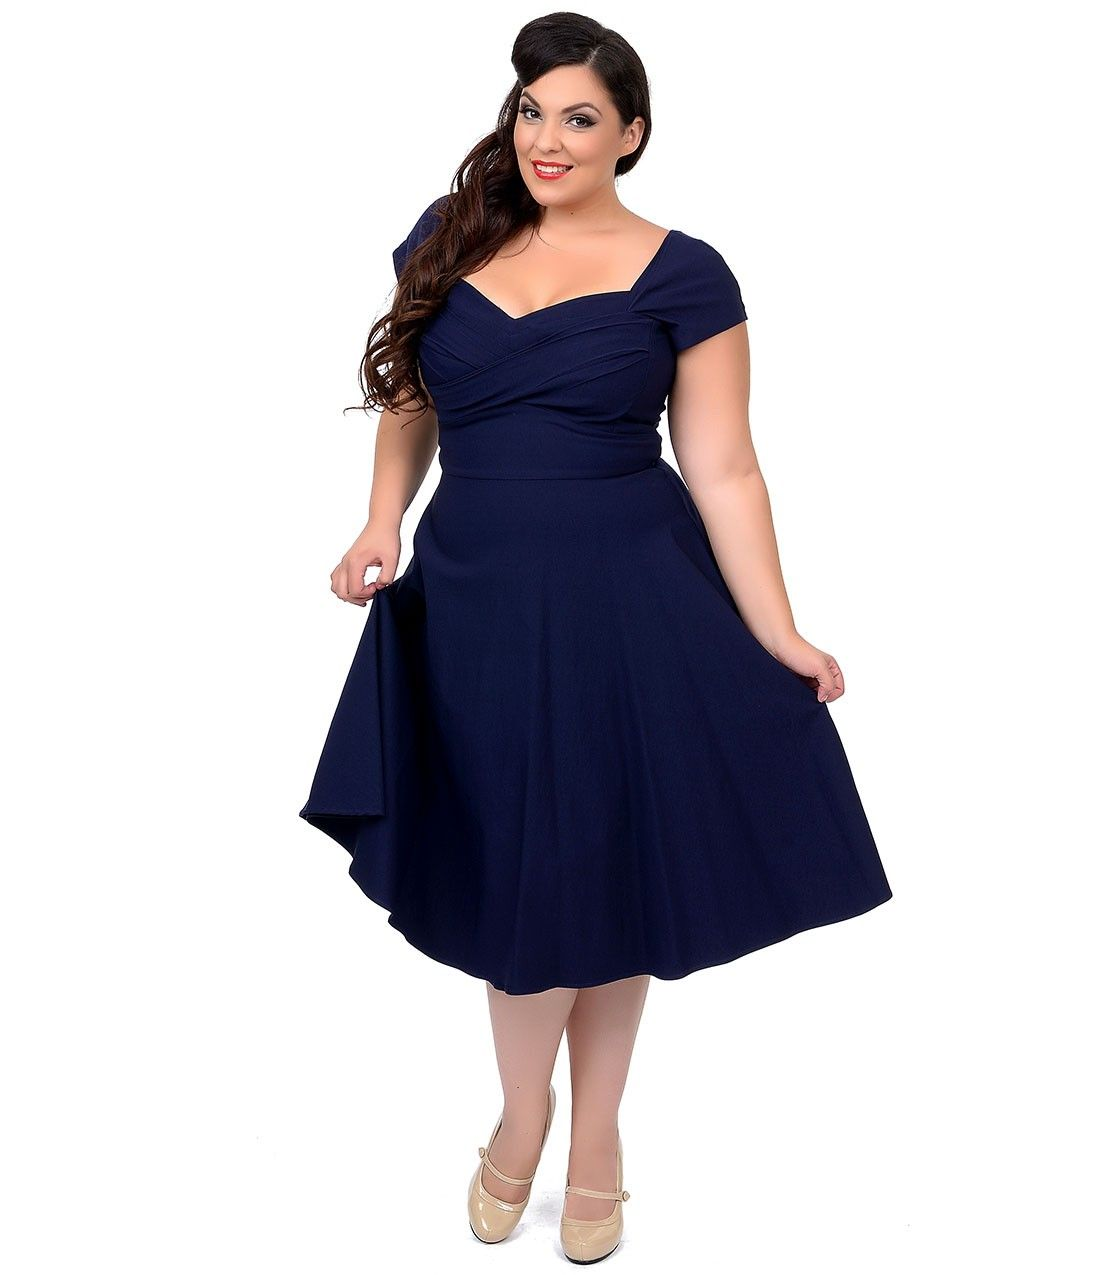 Plus Size Mad Men Navy Swing Dress #uniquevintage | Curvy Chic ...